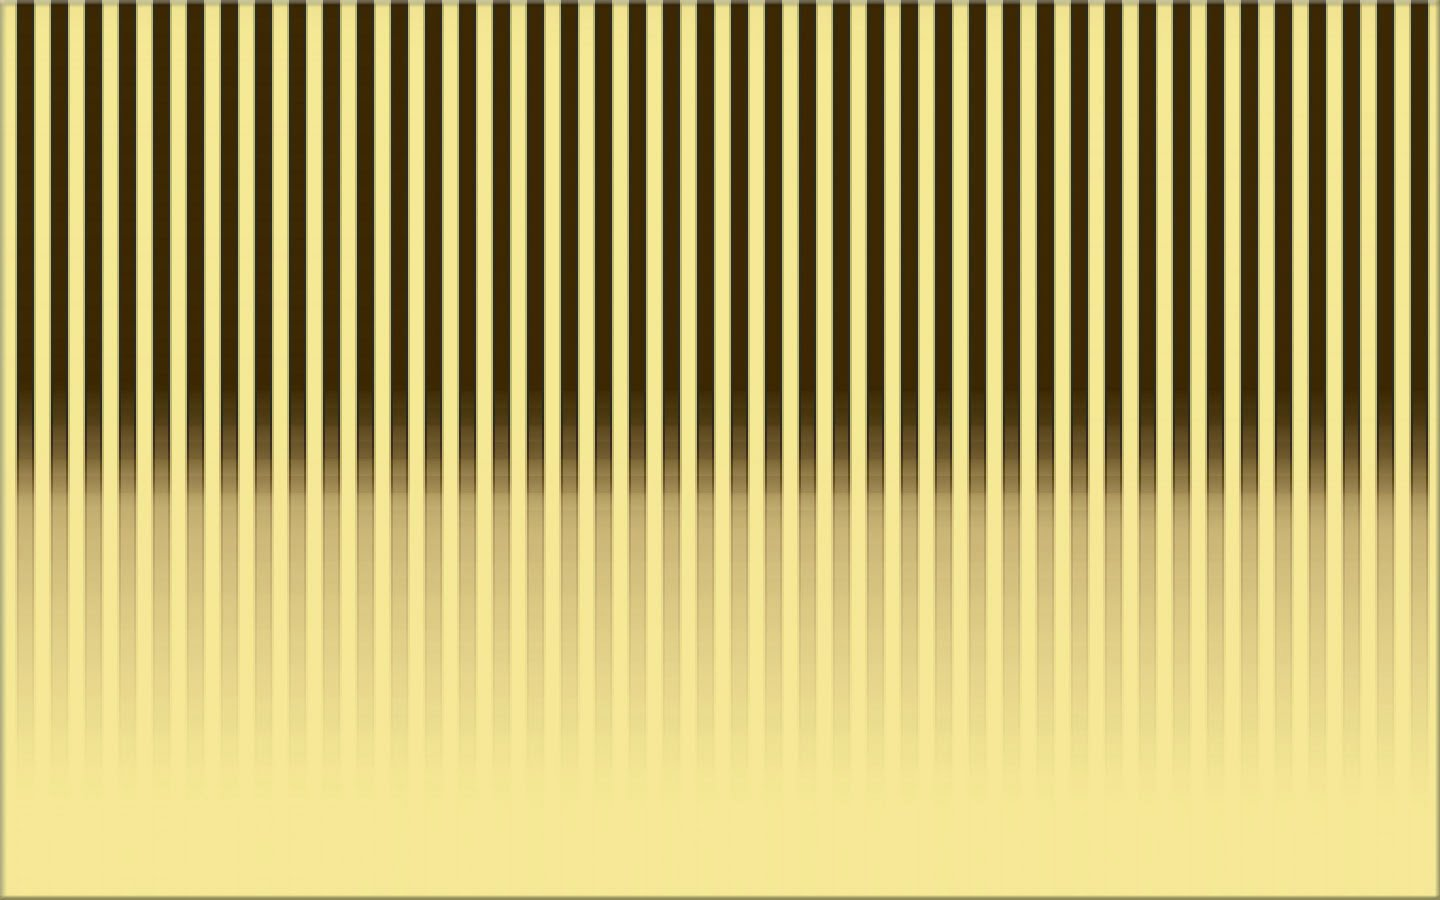 Sh Yn Design Stripe Wallpaper Gold Stripe 1440x900